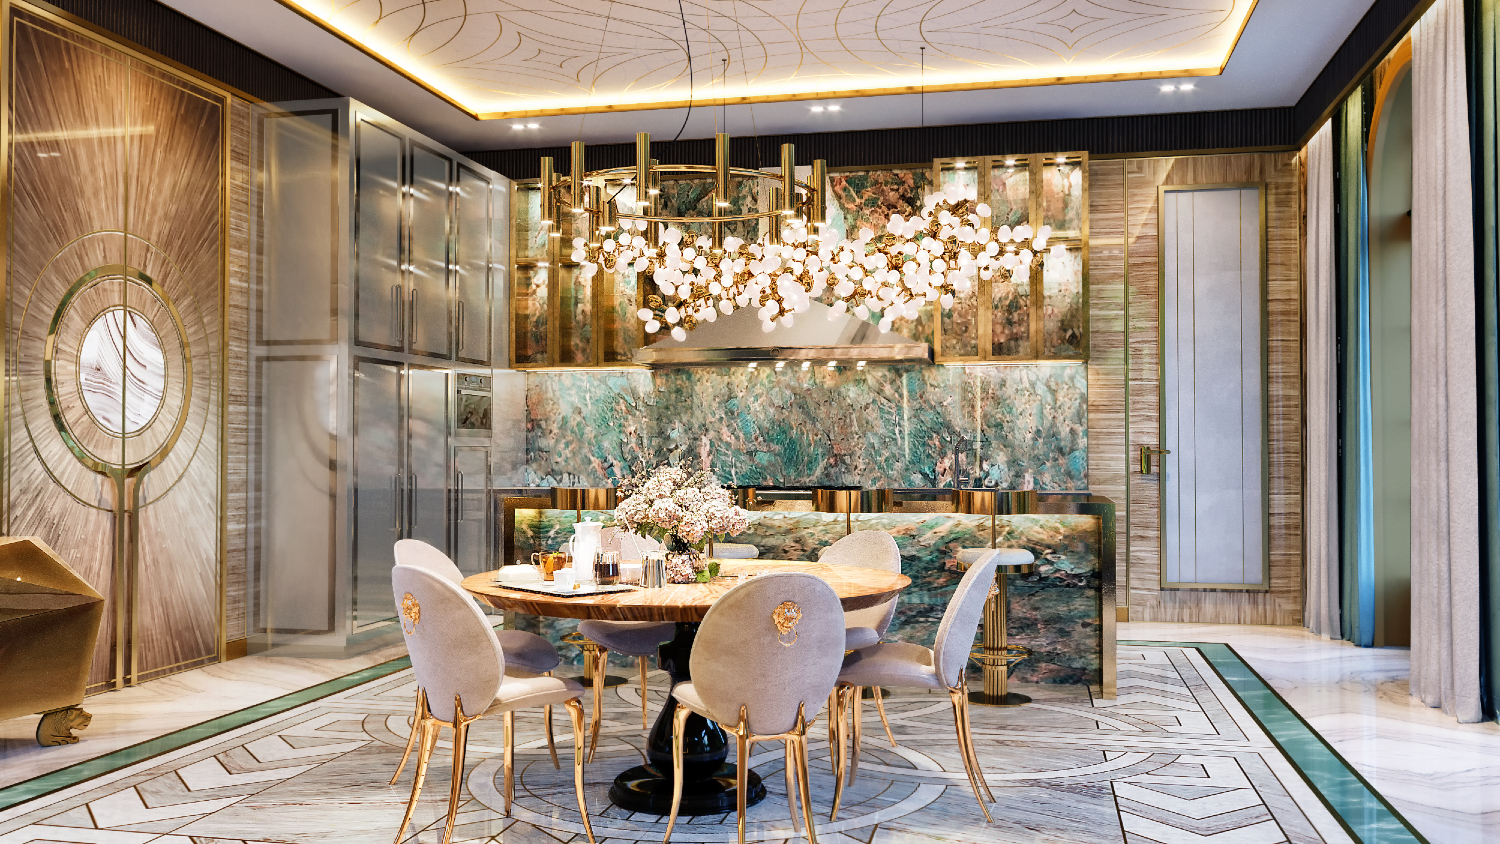 A Moscow Mansion By Elena Krylova Where Luxury Furniture Thrives 003  c1 1 1